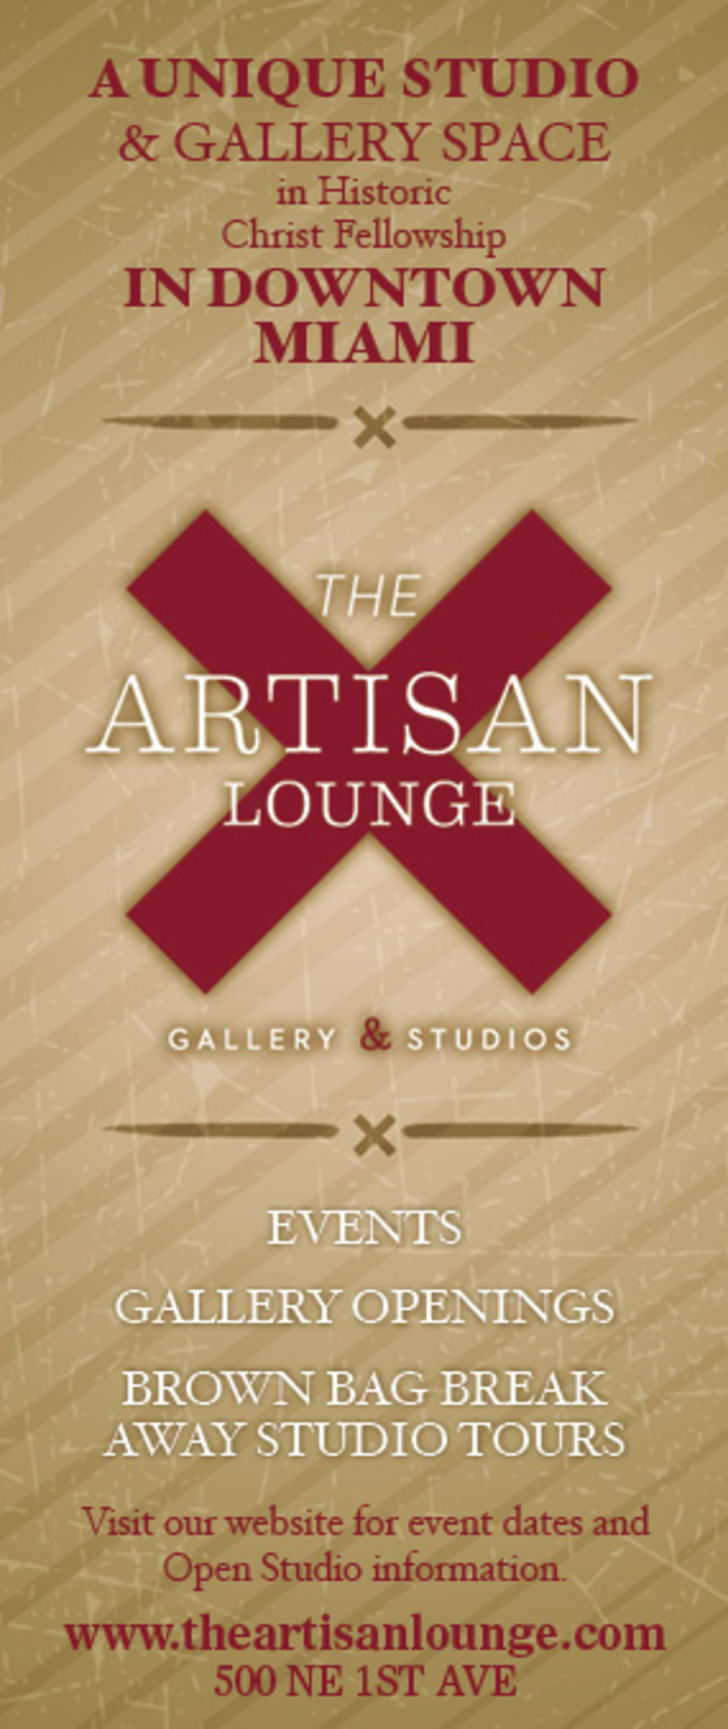 The Artisan Lounge